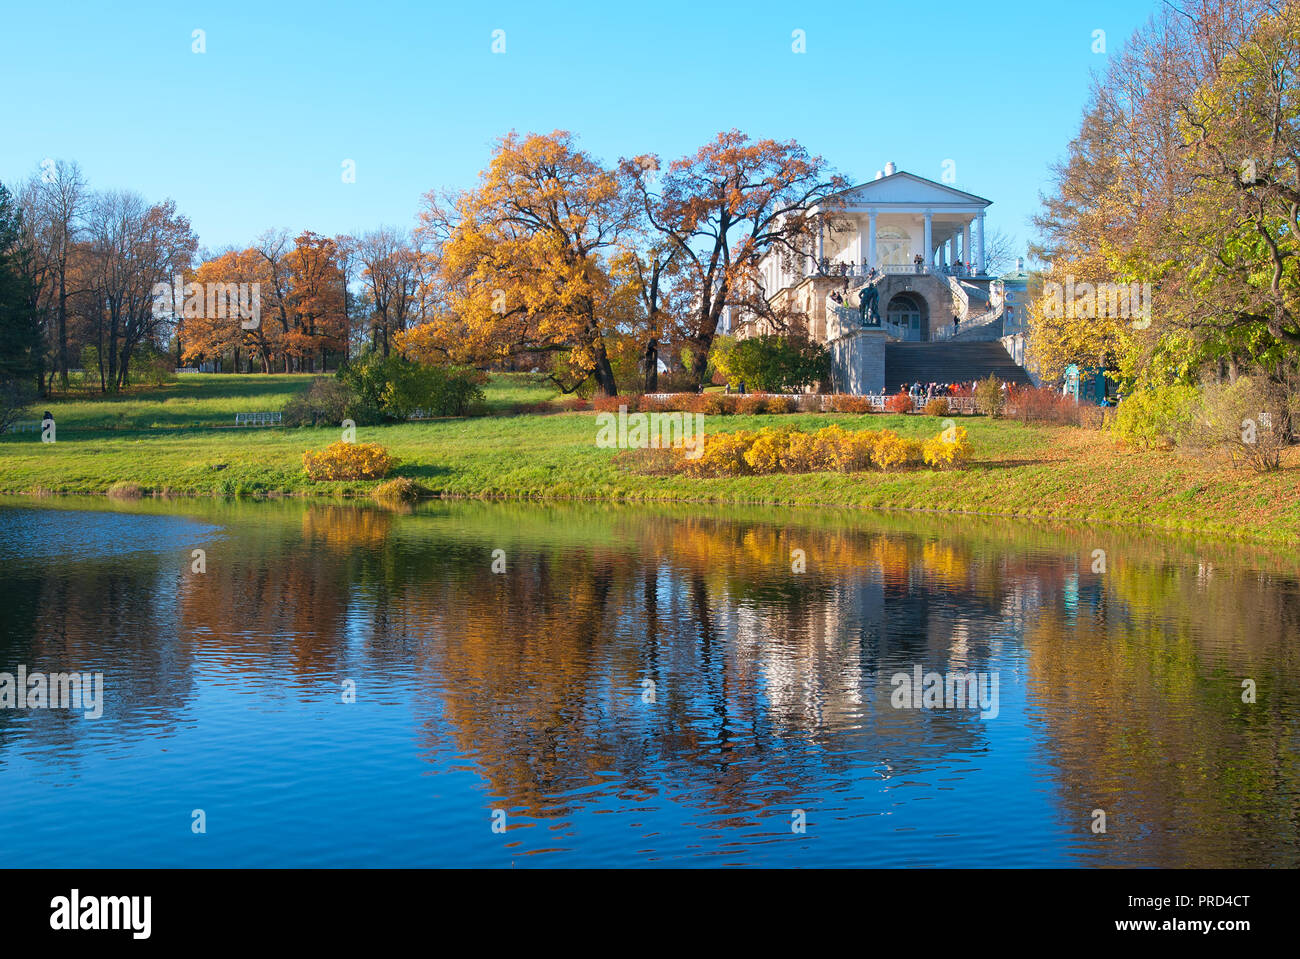 TSARSKOYE SELO, SAINT - PETERSBURG, RUSSIA â?? OCTOBER 19, 2016: The Cameron Gallery Ensemble (the Cameron Thermae) in The Catherine Park. Stock Photo